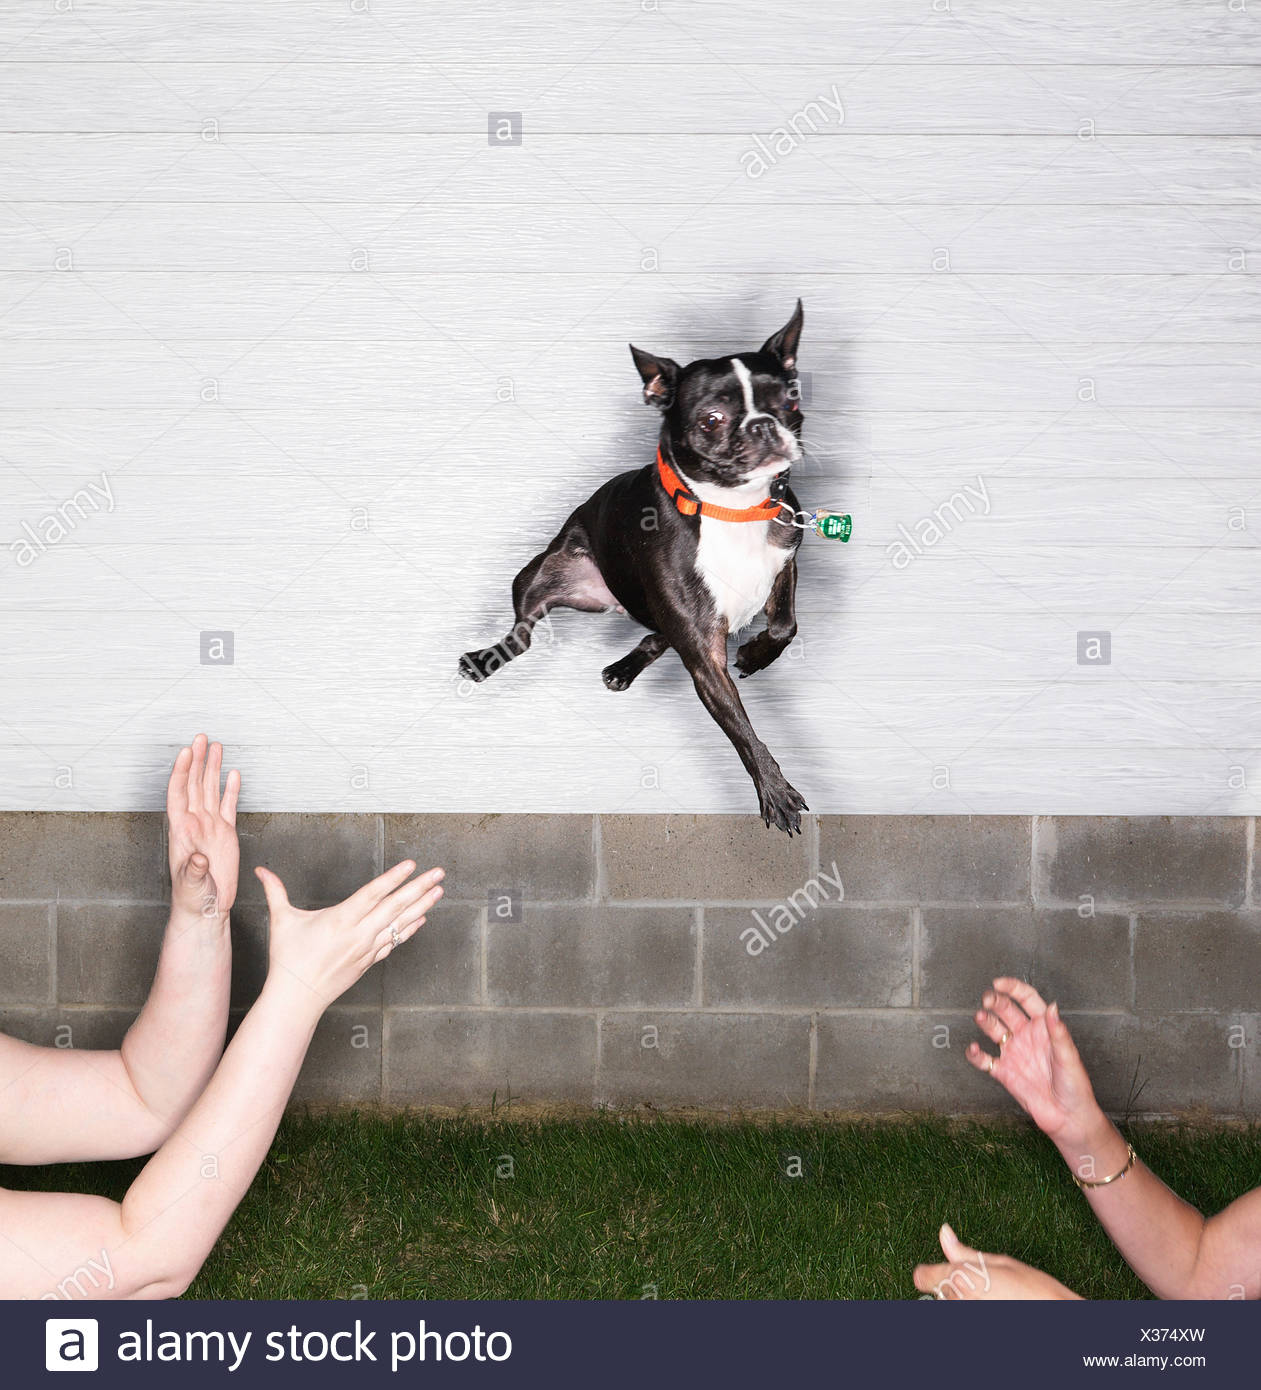 Boston Terrier leaping through air - Stock Image